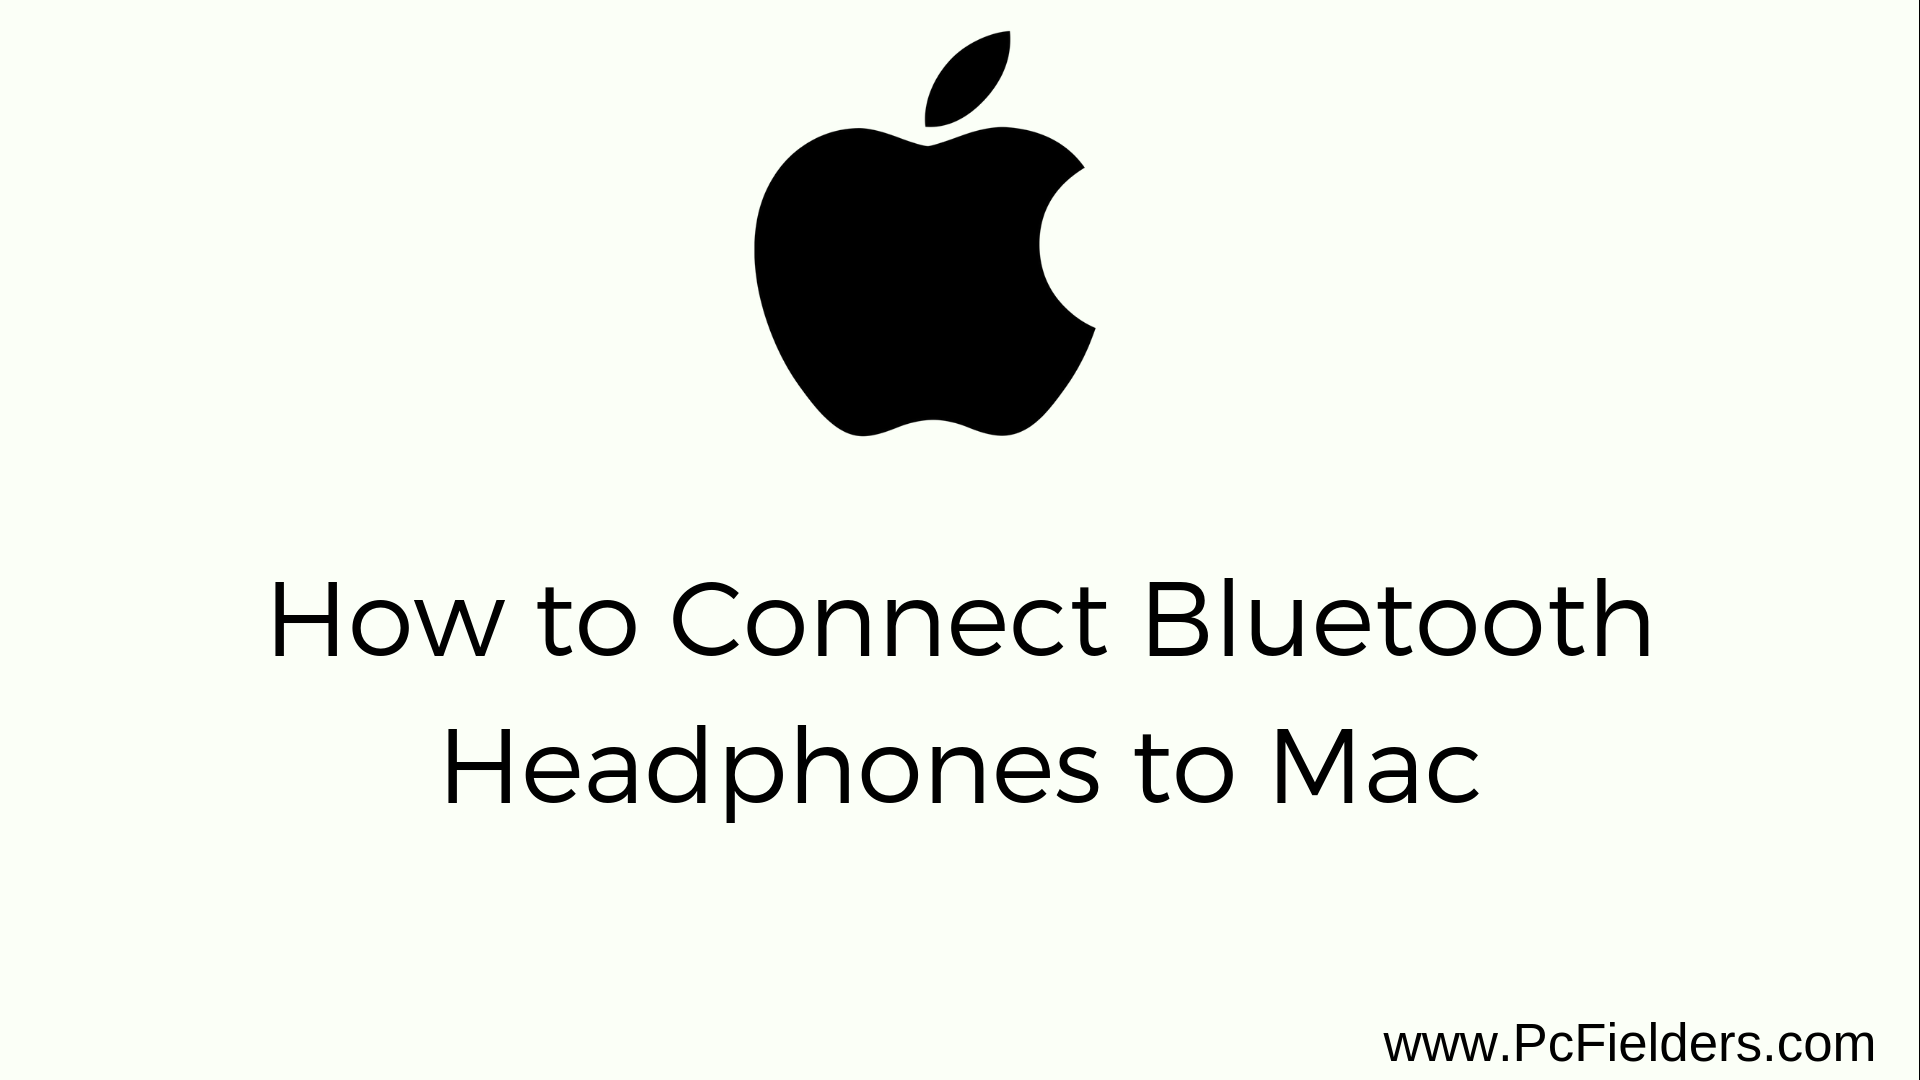 Connect Bluetooth to Mac